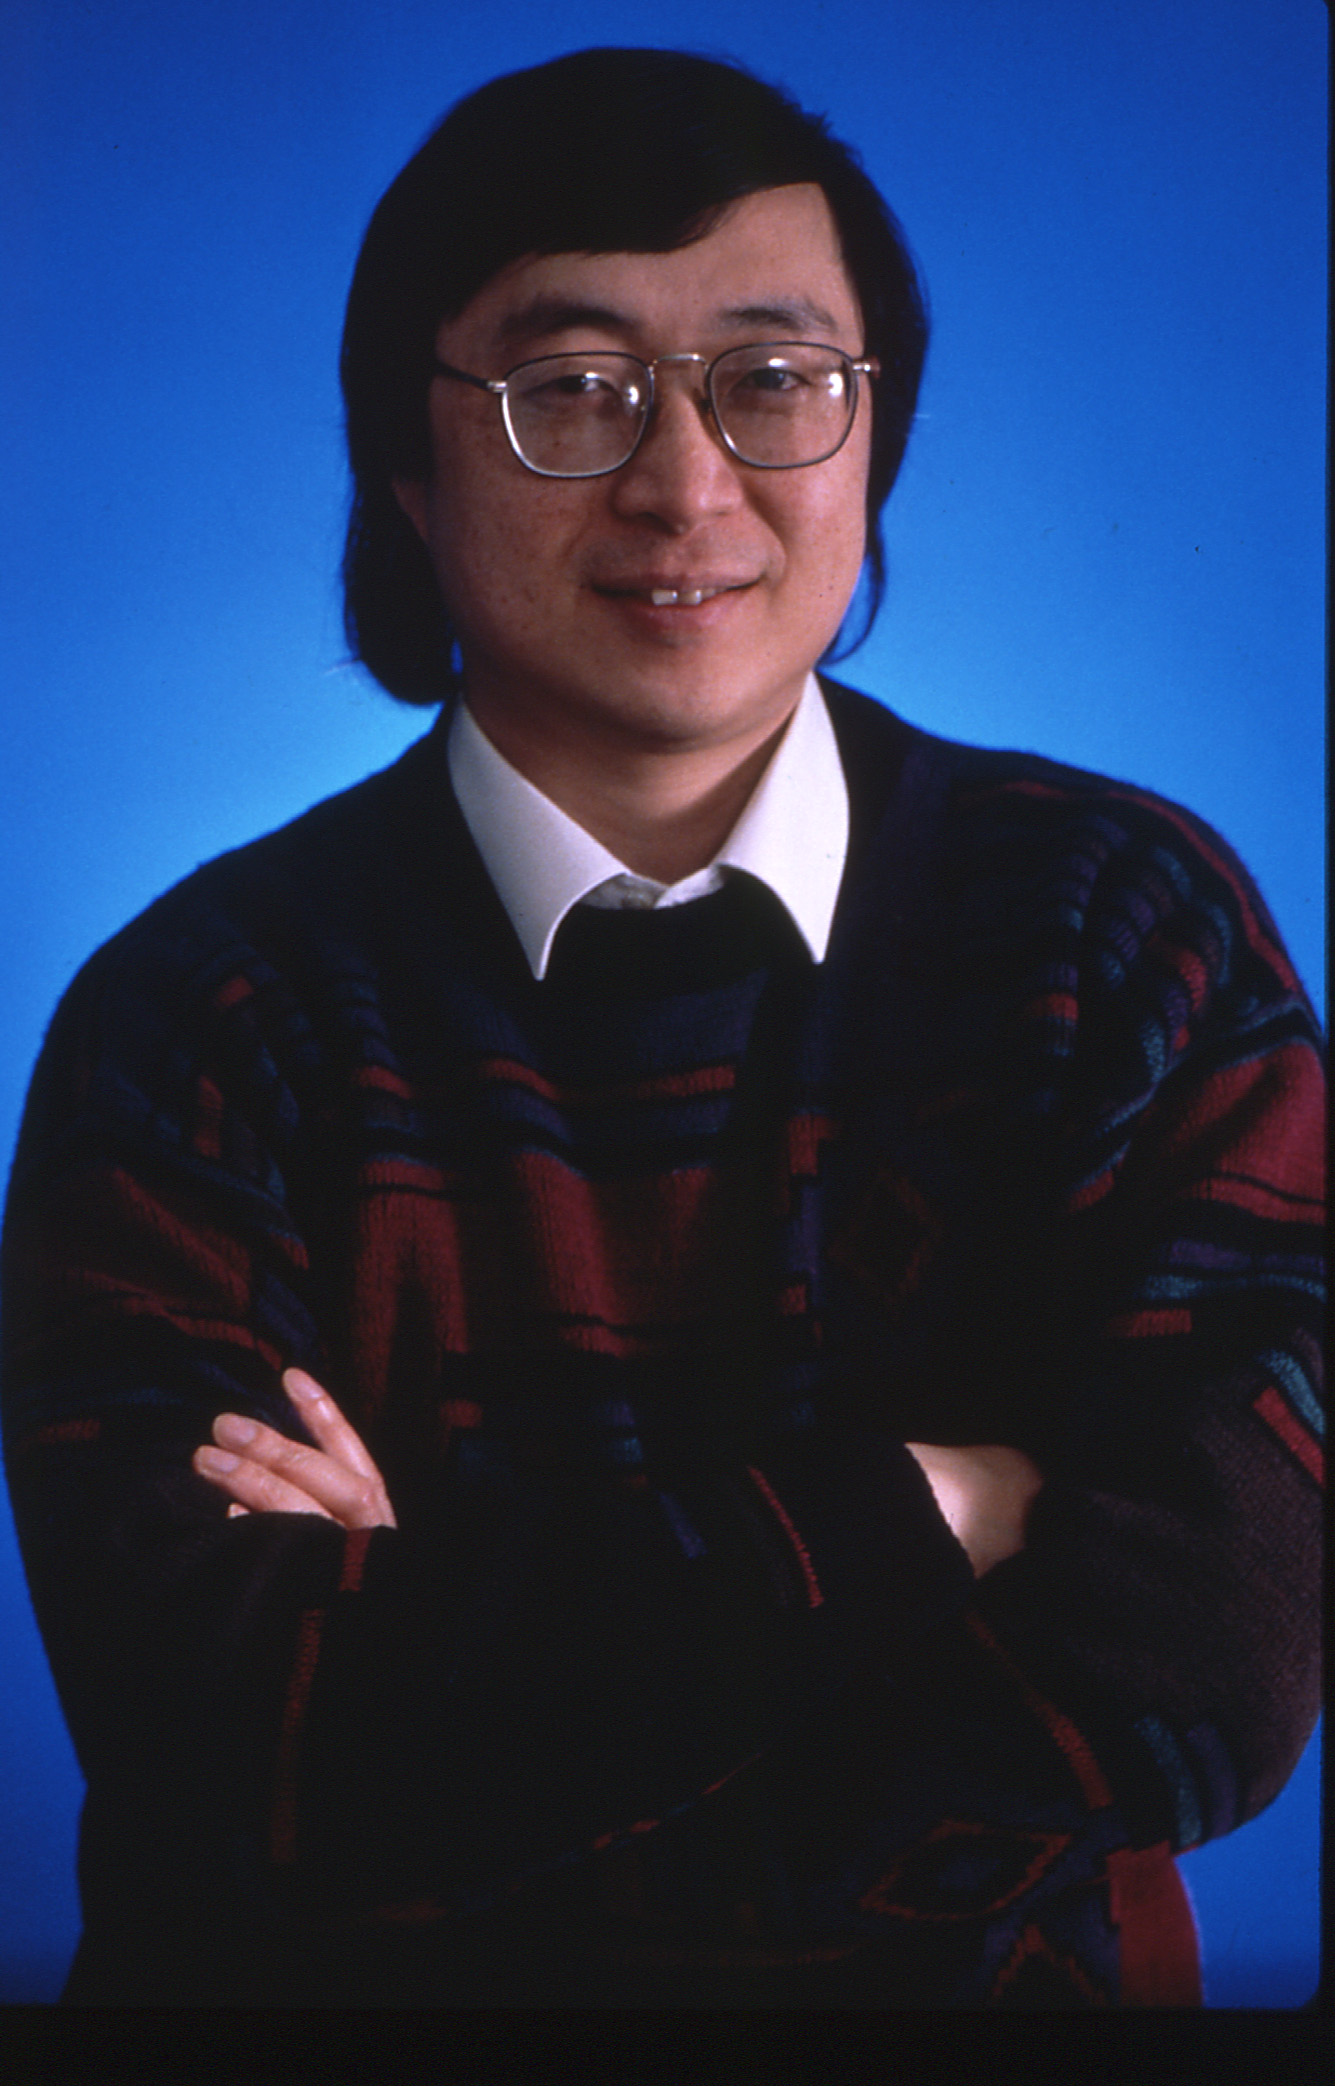 - 5-3 and 5-4.Feng-Hsiung_Hsu_Deep_Blue_Team_Member.1997.L02645328.IBM_ARCHIVES